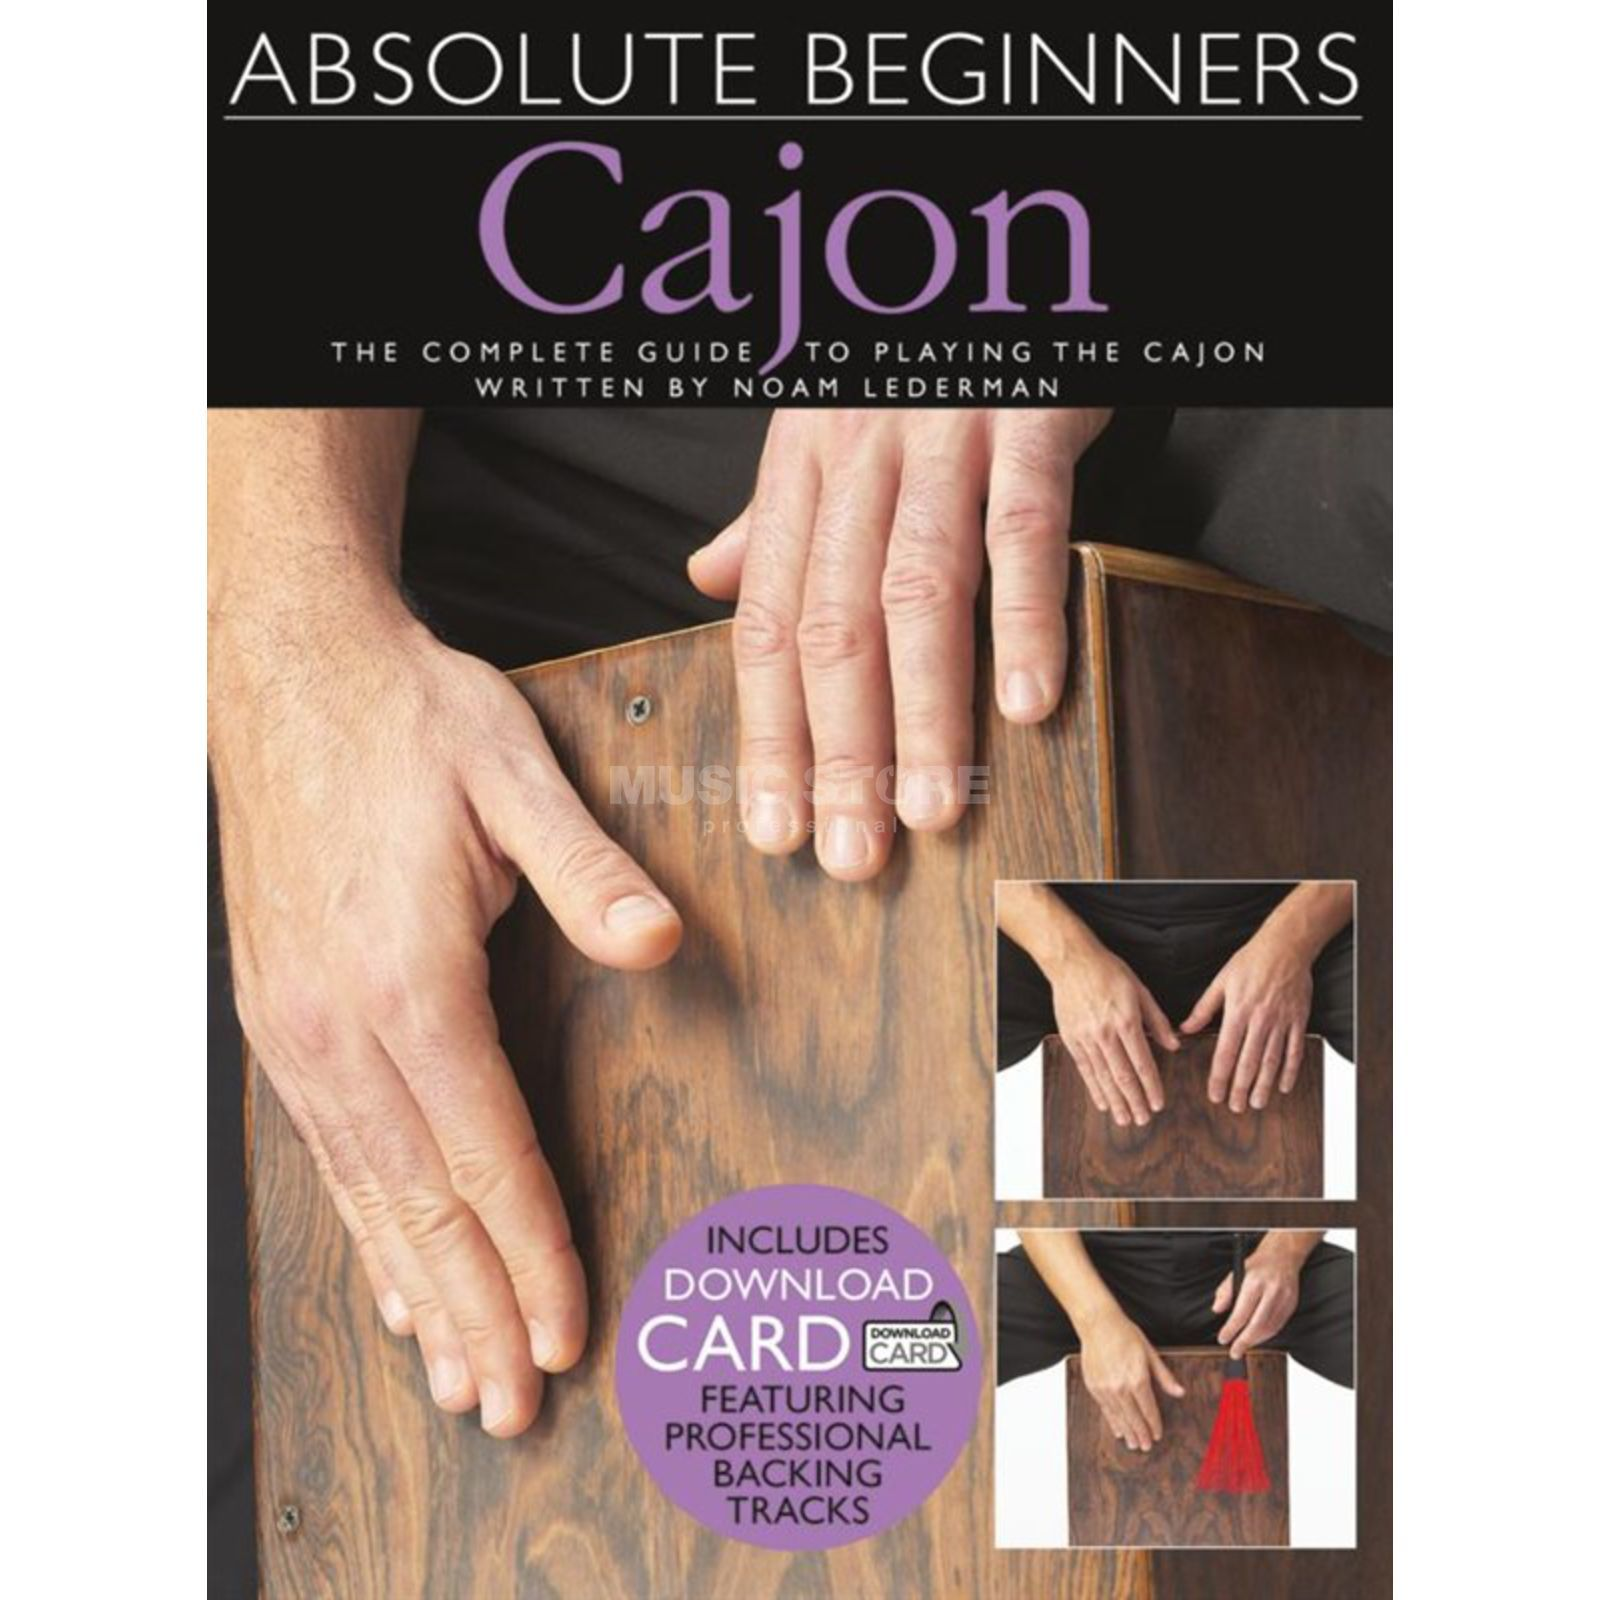 Wise Publications Absolute Beginners: Cajon Produktbild